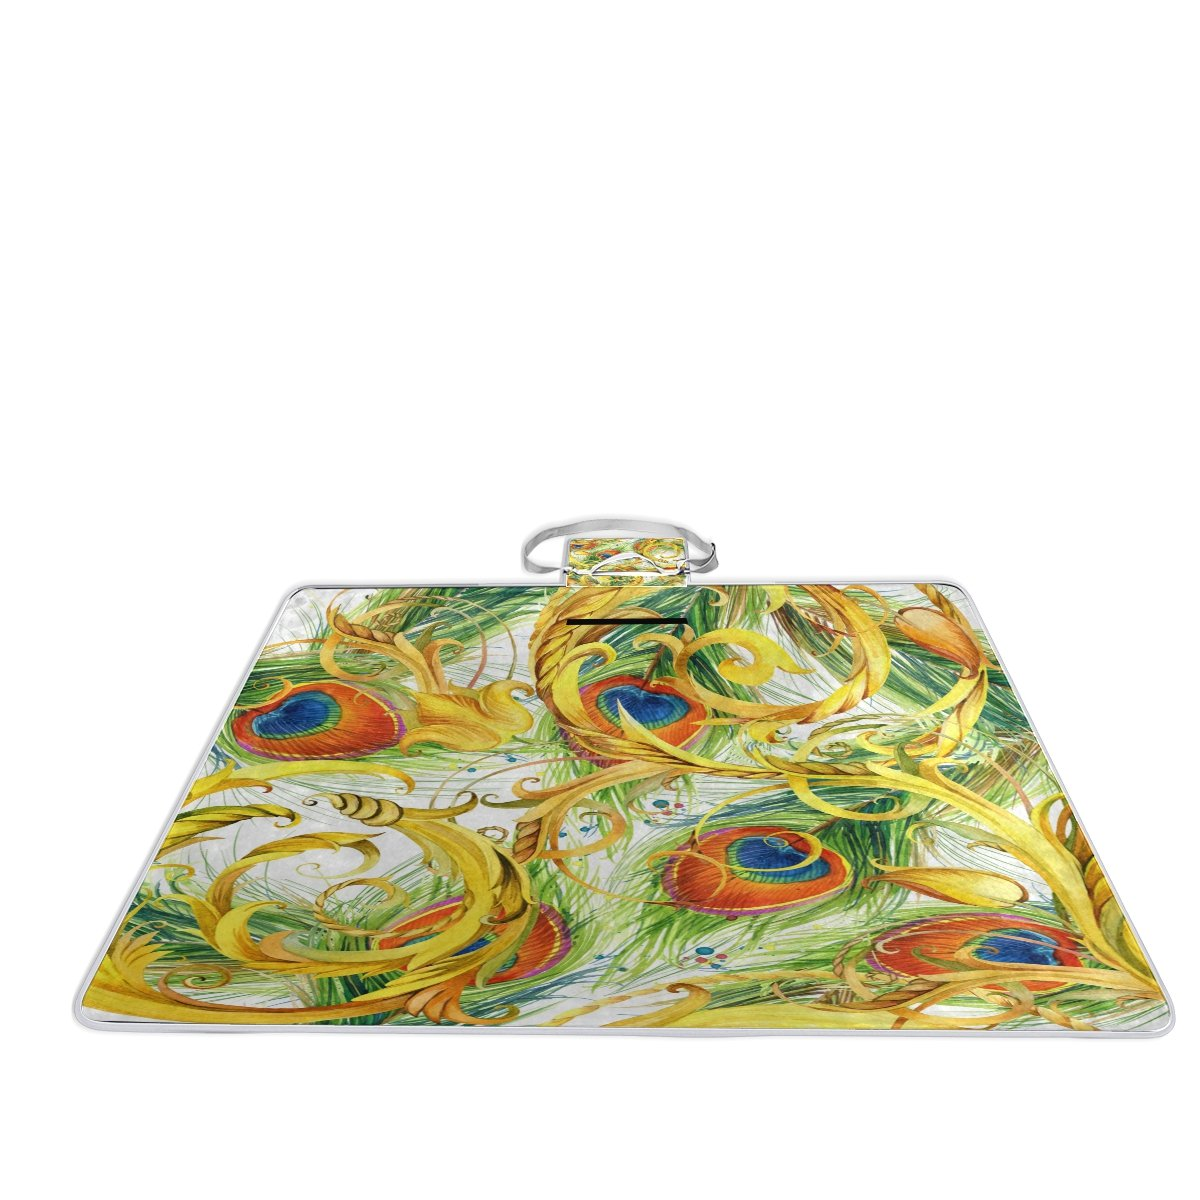 Bennigiry Gold Peacock Outdoor Picnic Blanket Mat, Extra Large Foldable and Waterproof Family Camping Mat for Outdoor Beach Hiking Grass Travel